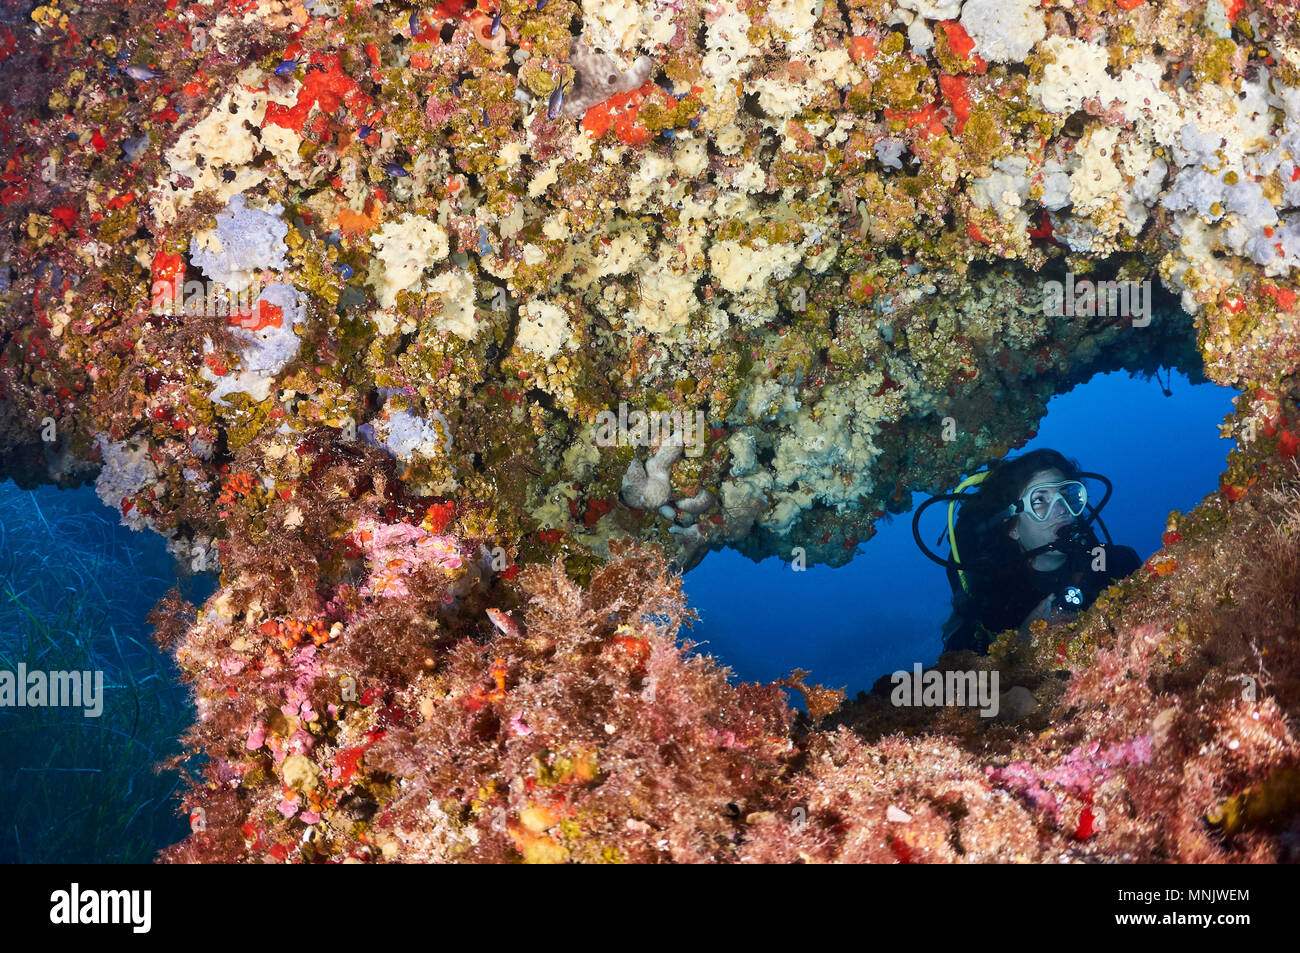 Female scuba diver framed in an underwater window of a colorful reef full of marine life at Ses Salines Natural Park(Formentera,Balearic Islands,Spain - Stock Image